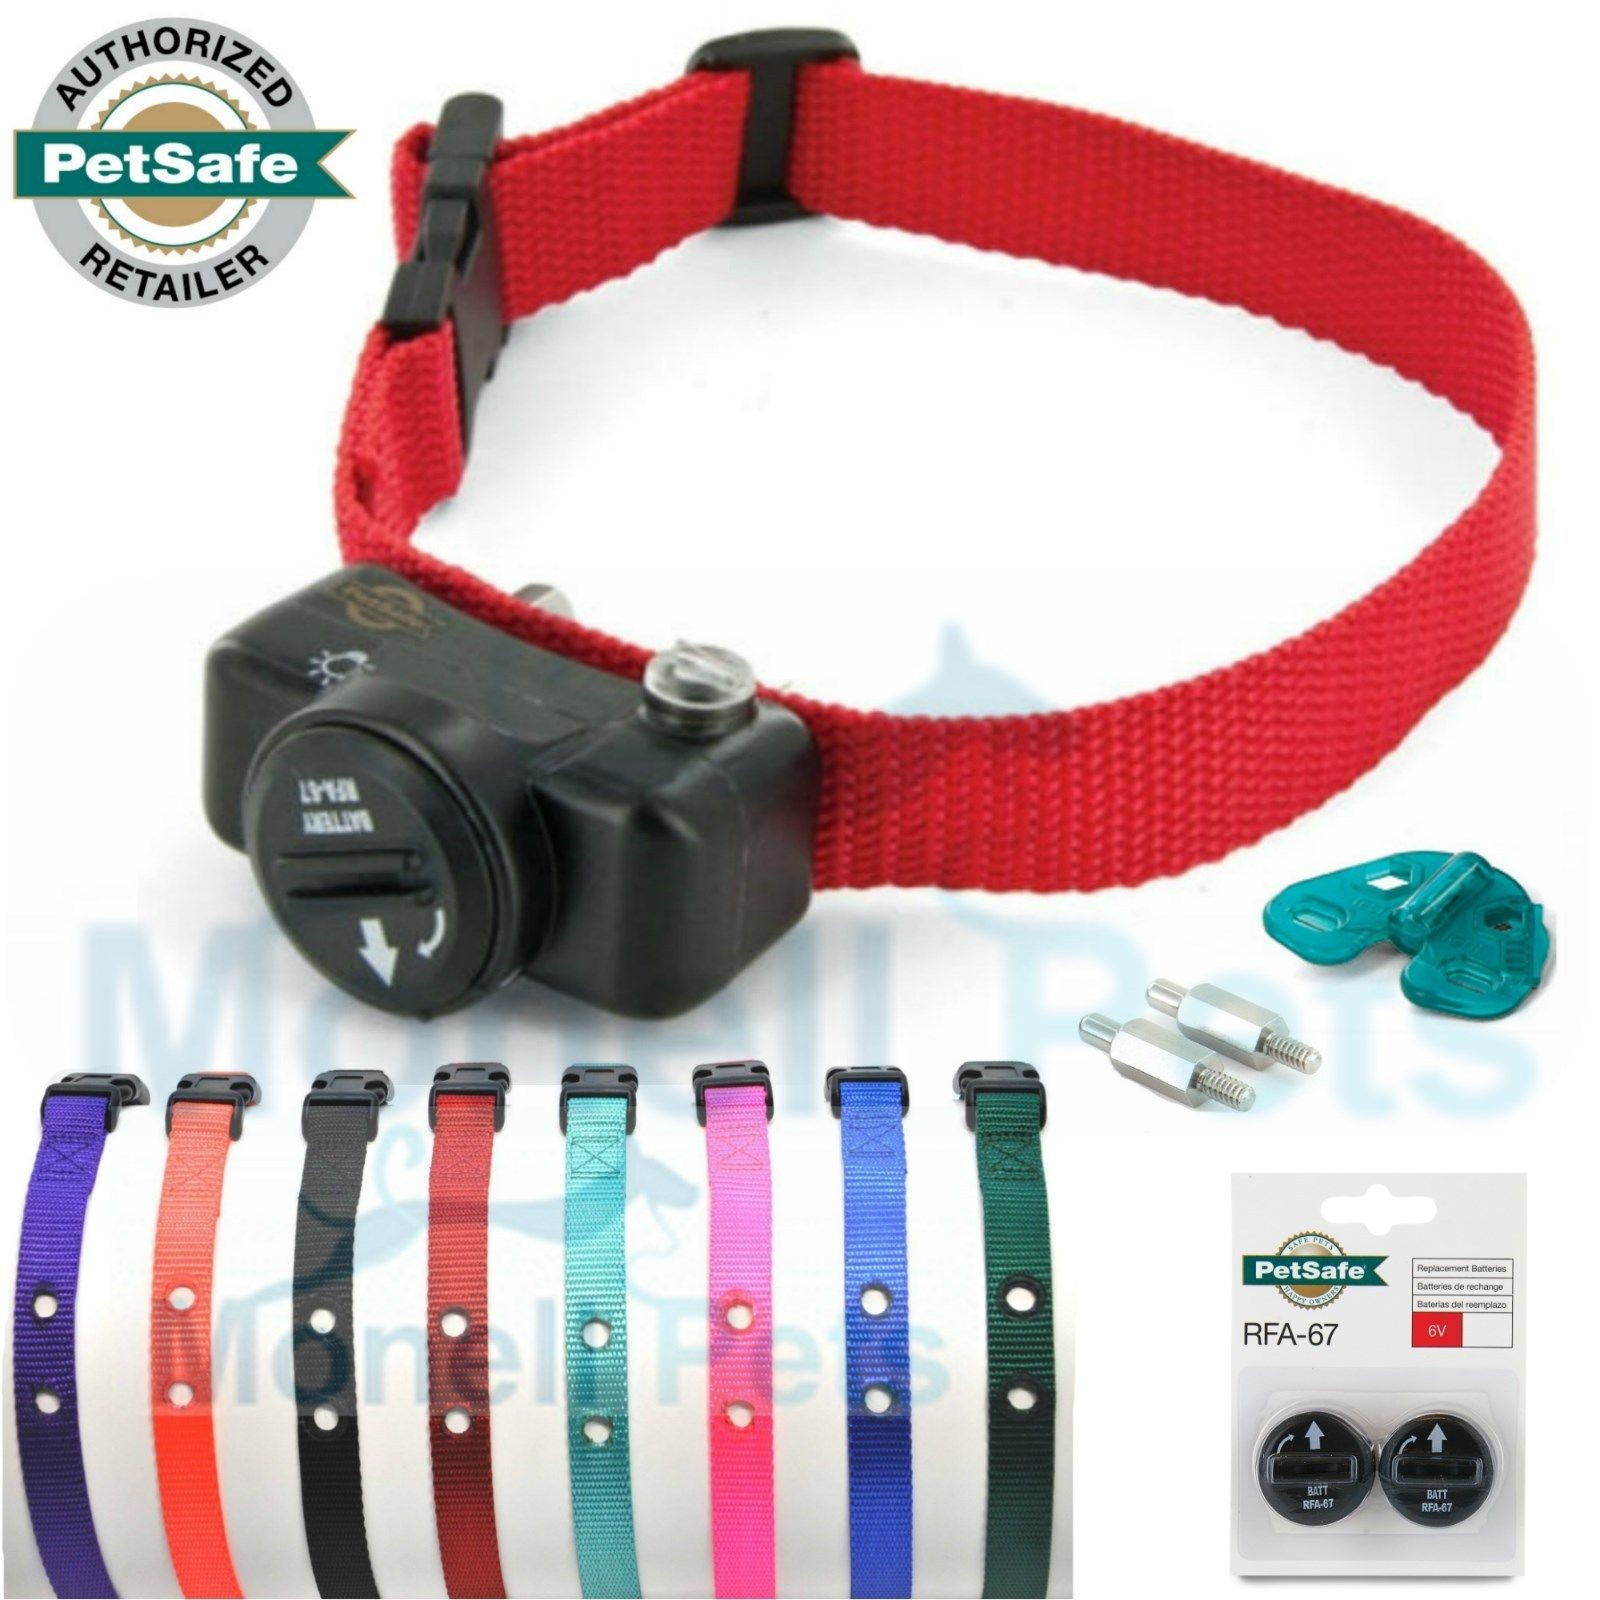 PetSafe Extra In-Ground Deluxe Dog Fence Ultralight Receiver Collar with 3 Batteries and Extra Colored Strap - PUL-275